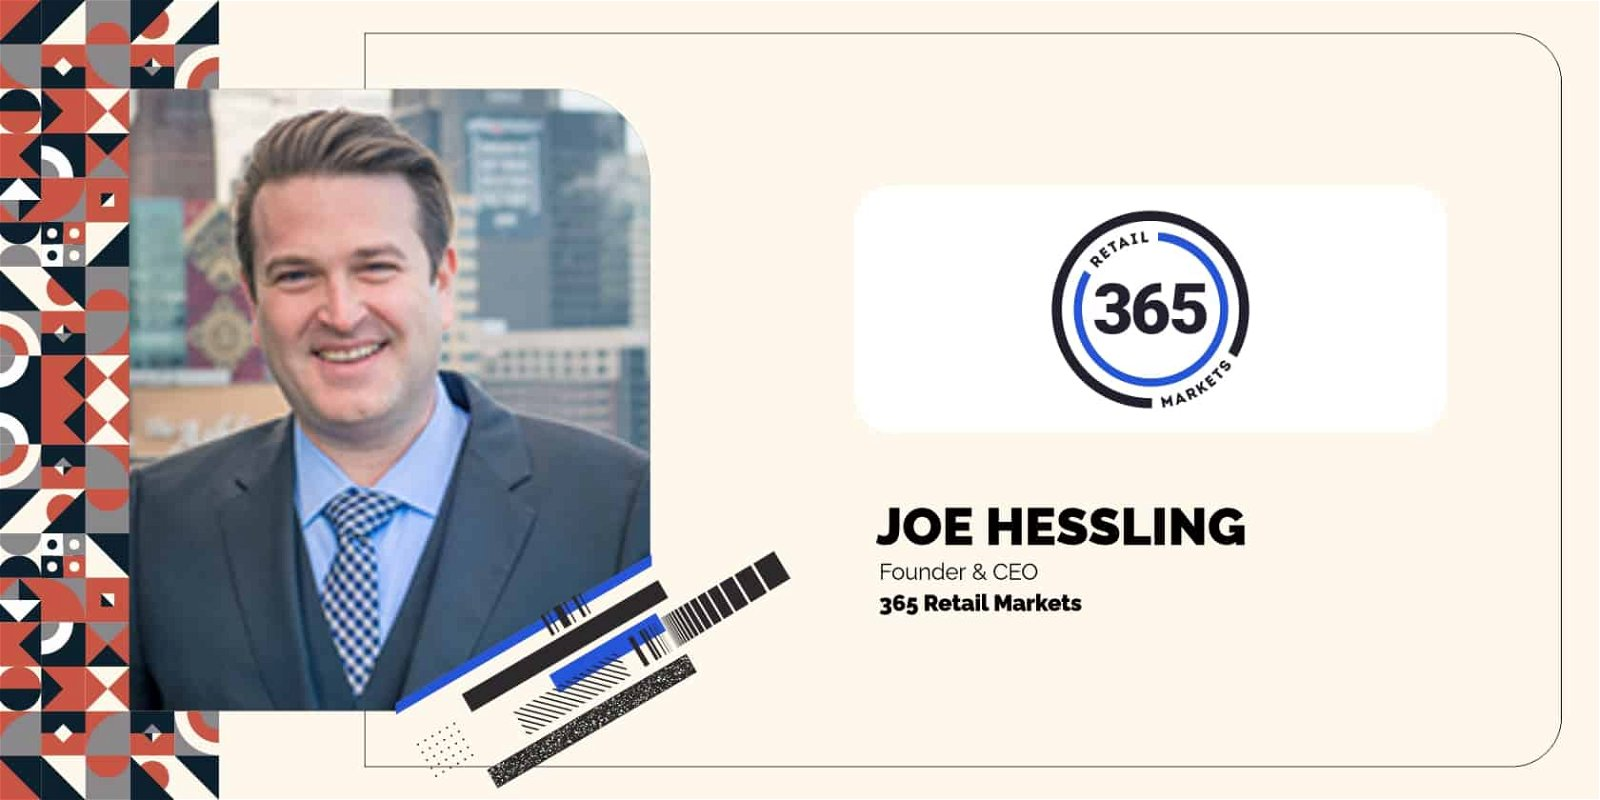 Joe Hessling, Founder, and CEO of 365 Retail Markets